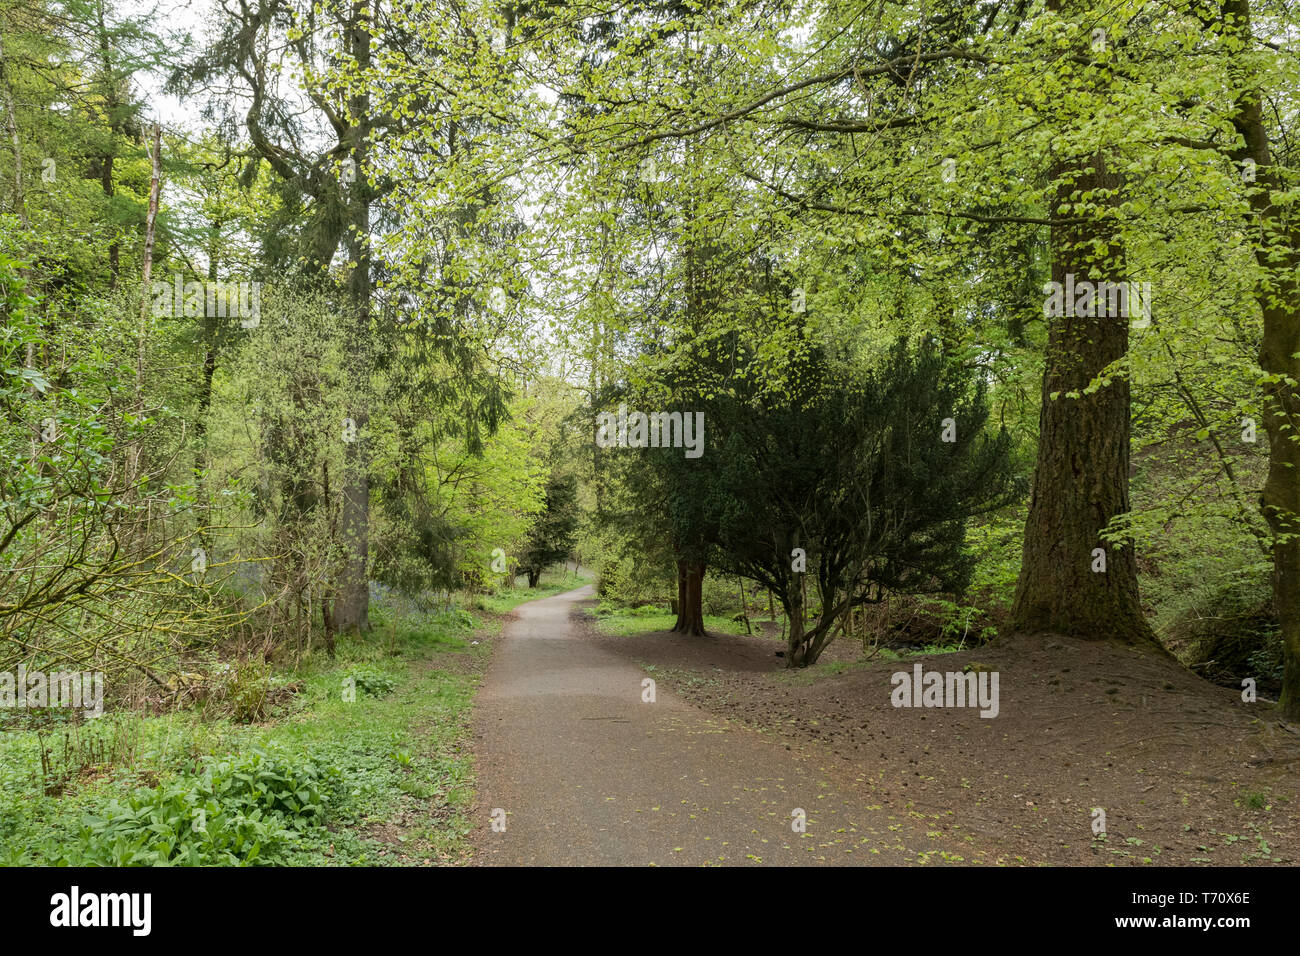 Cumbernauld Glen, an Outlander tv series film location, Cumbernauld, North Lanarkshire, Scotland, UK - Stock Image